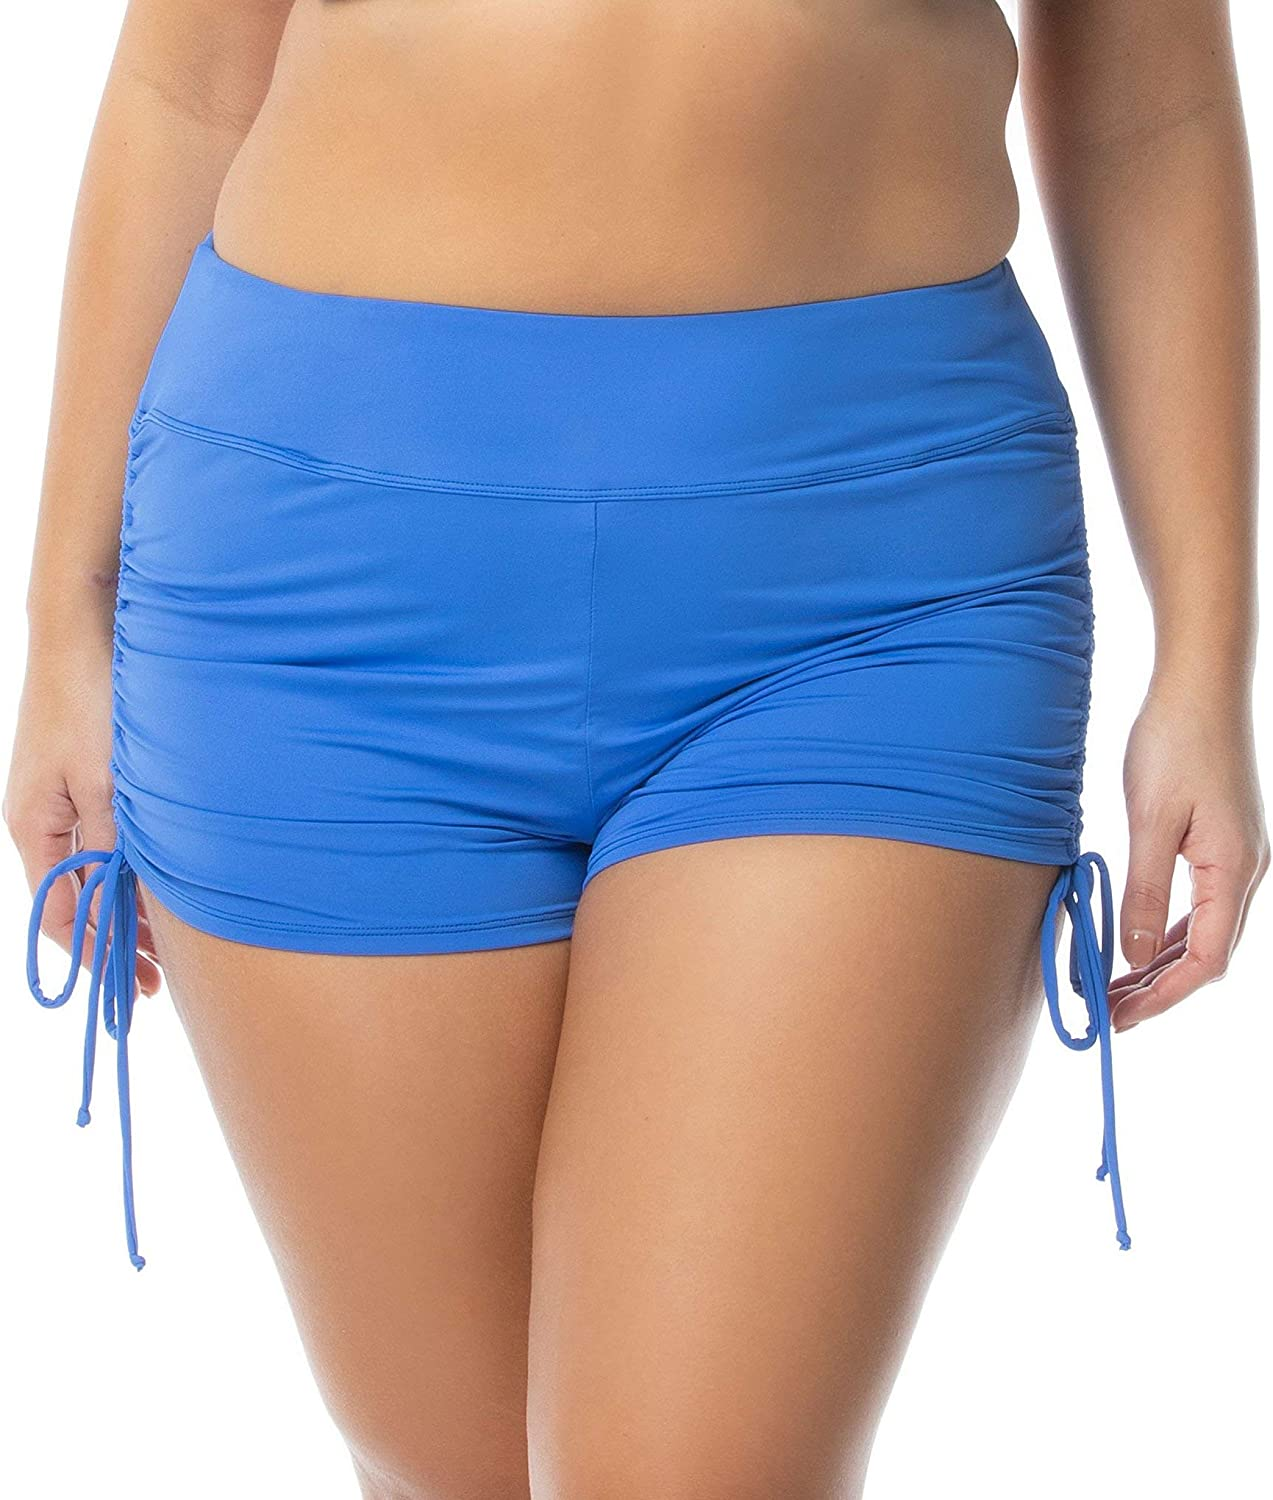 BEACH HOUSE Woman Women's Plus-Size Solid Boy Short Swimsuit Bottom with Adjustable Side Ties (Harbor Blue 402, 22W)